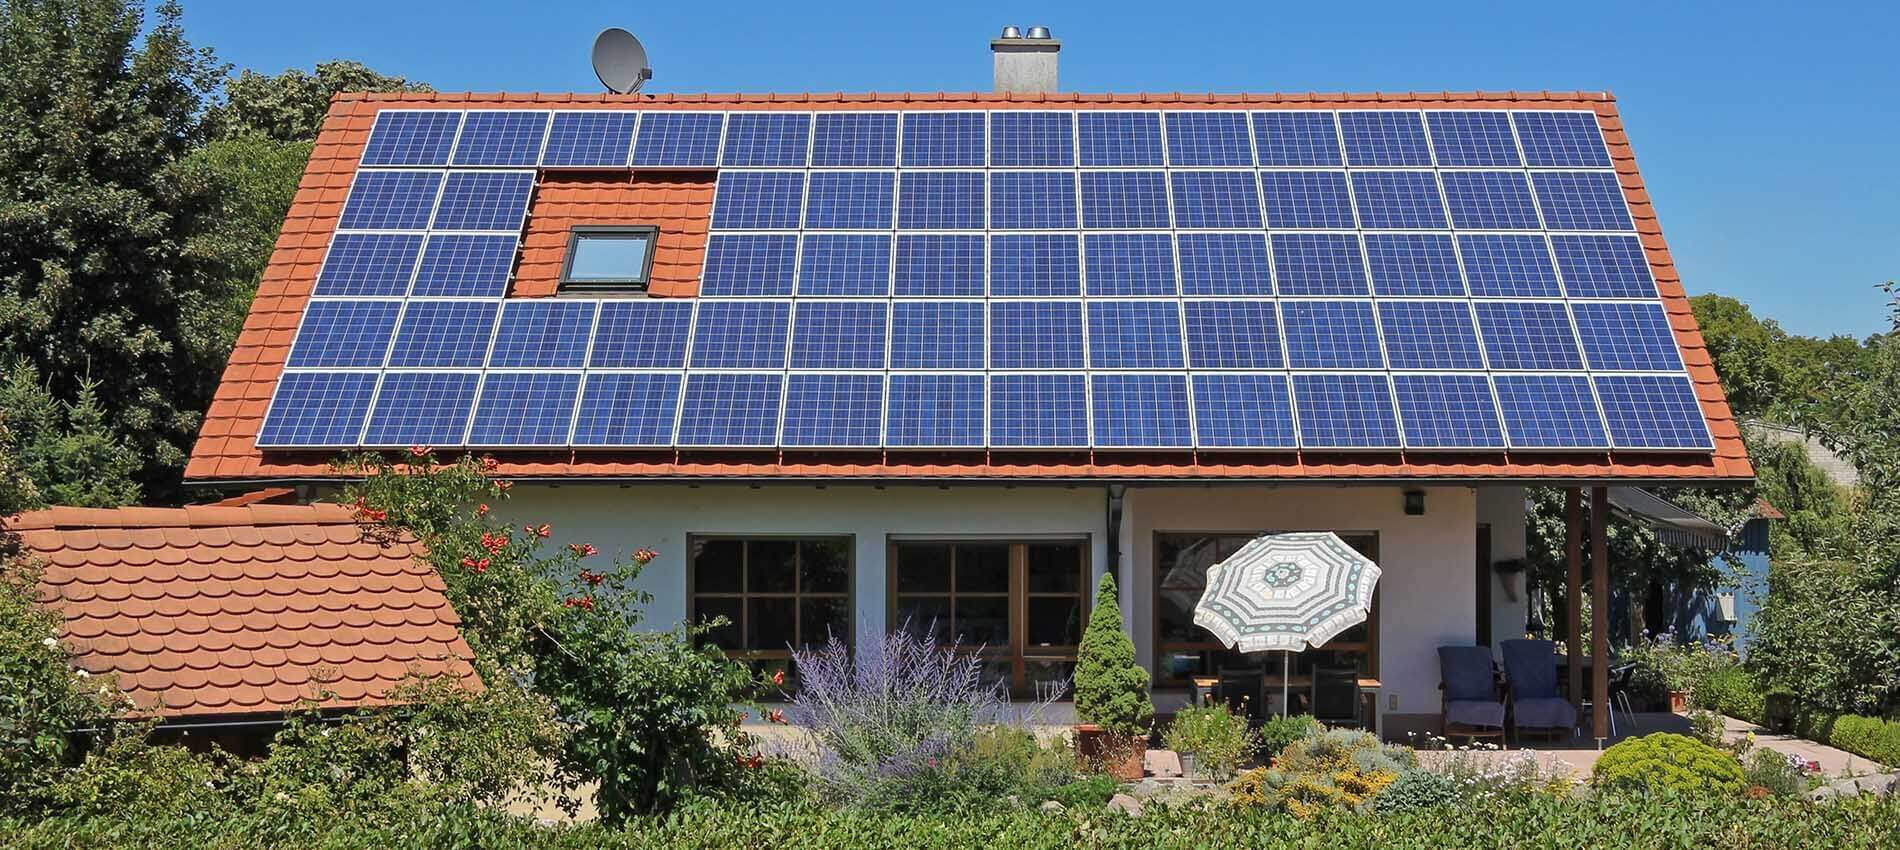 10kW Solar power installation example roof-mounted